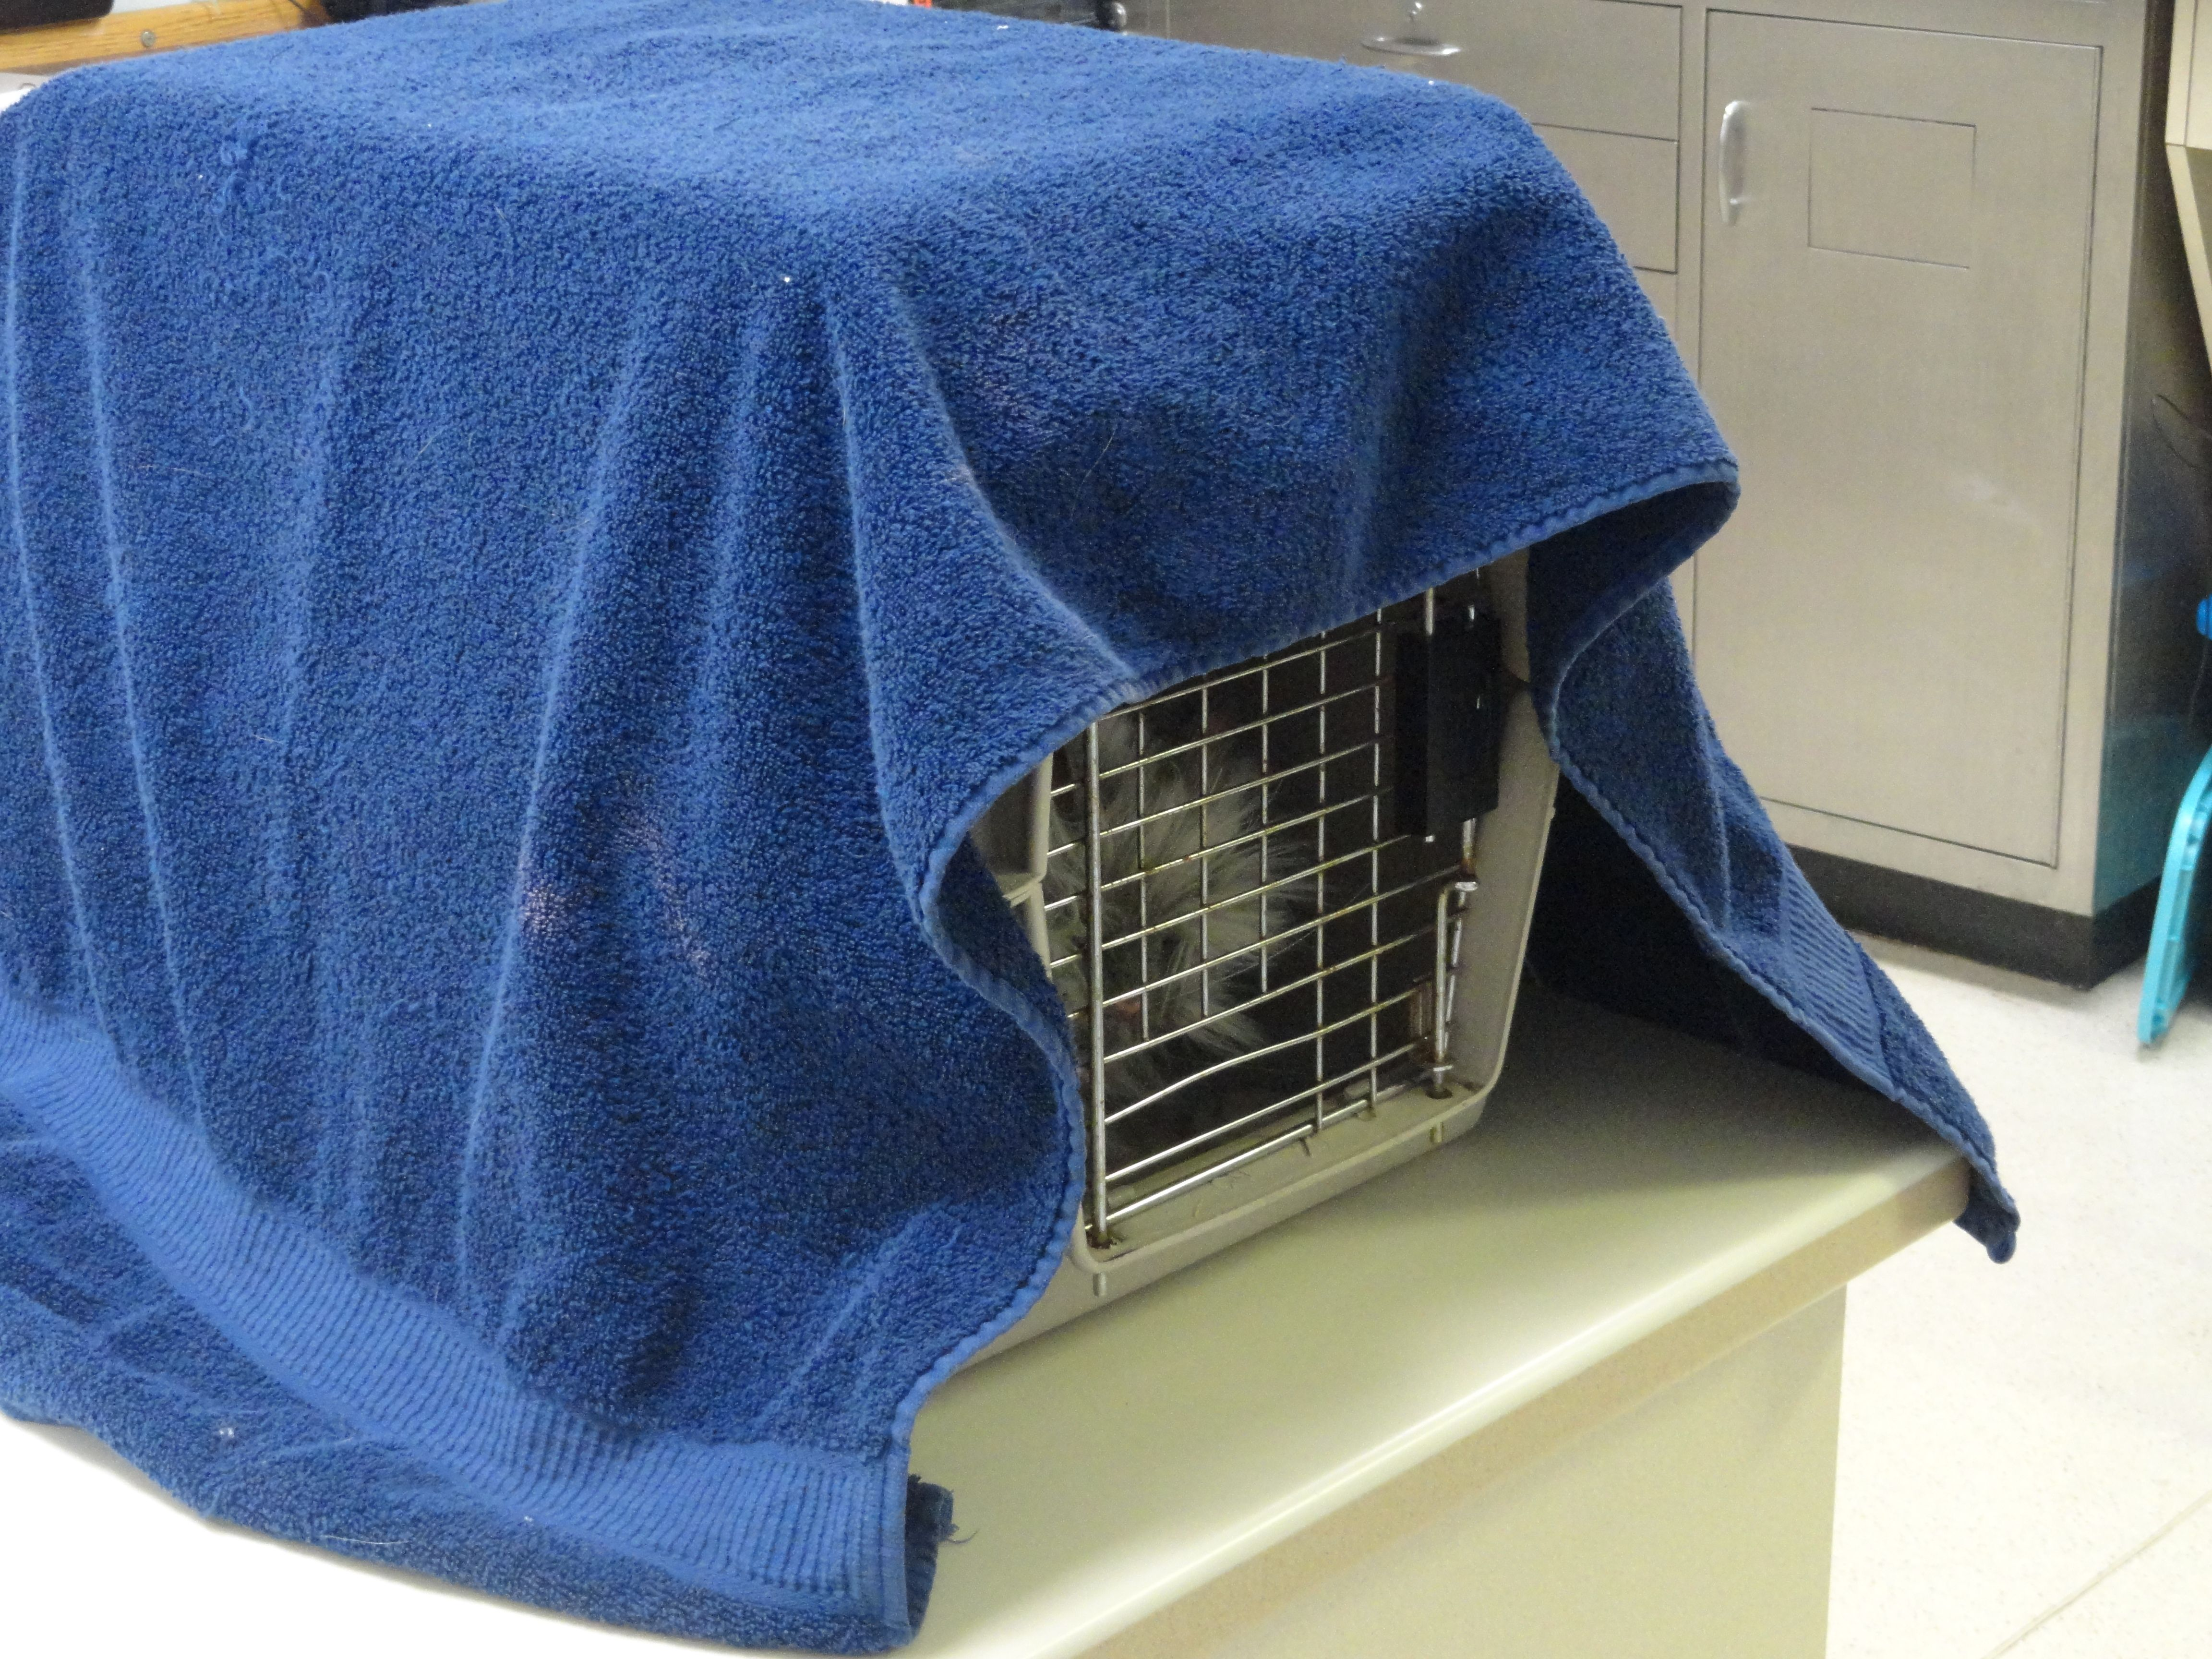 c3b91d58dc We cover all the cat carriers with a towel sprayed with Feliway when they  come in the door.